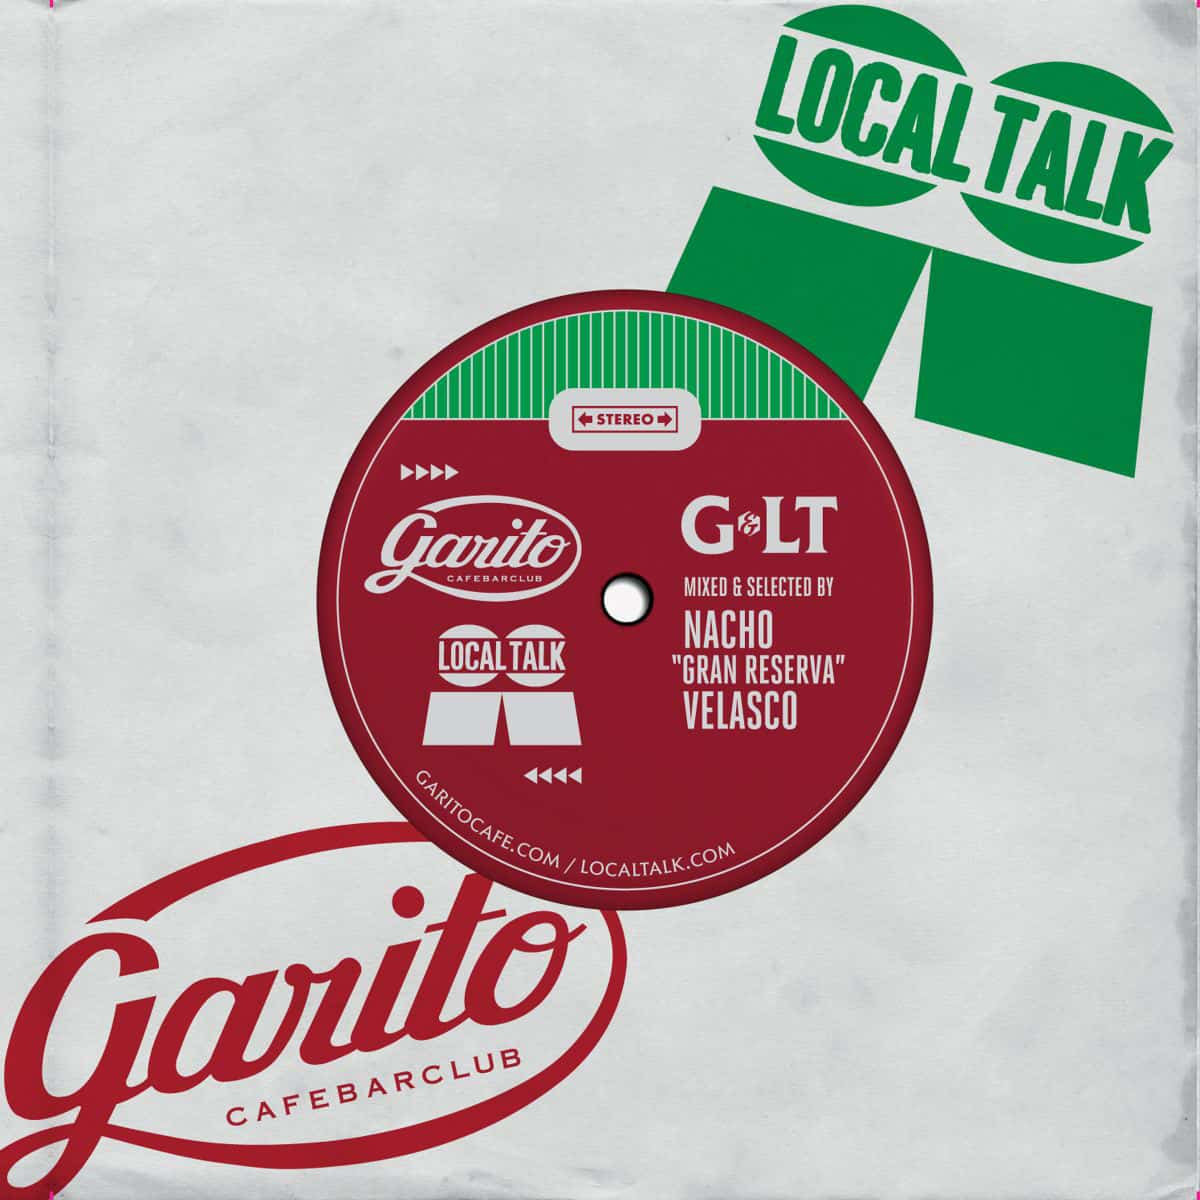 LTCD001_-_Local_Talk_vs_Garito_-_Music_Joined_Us_1200p